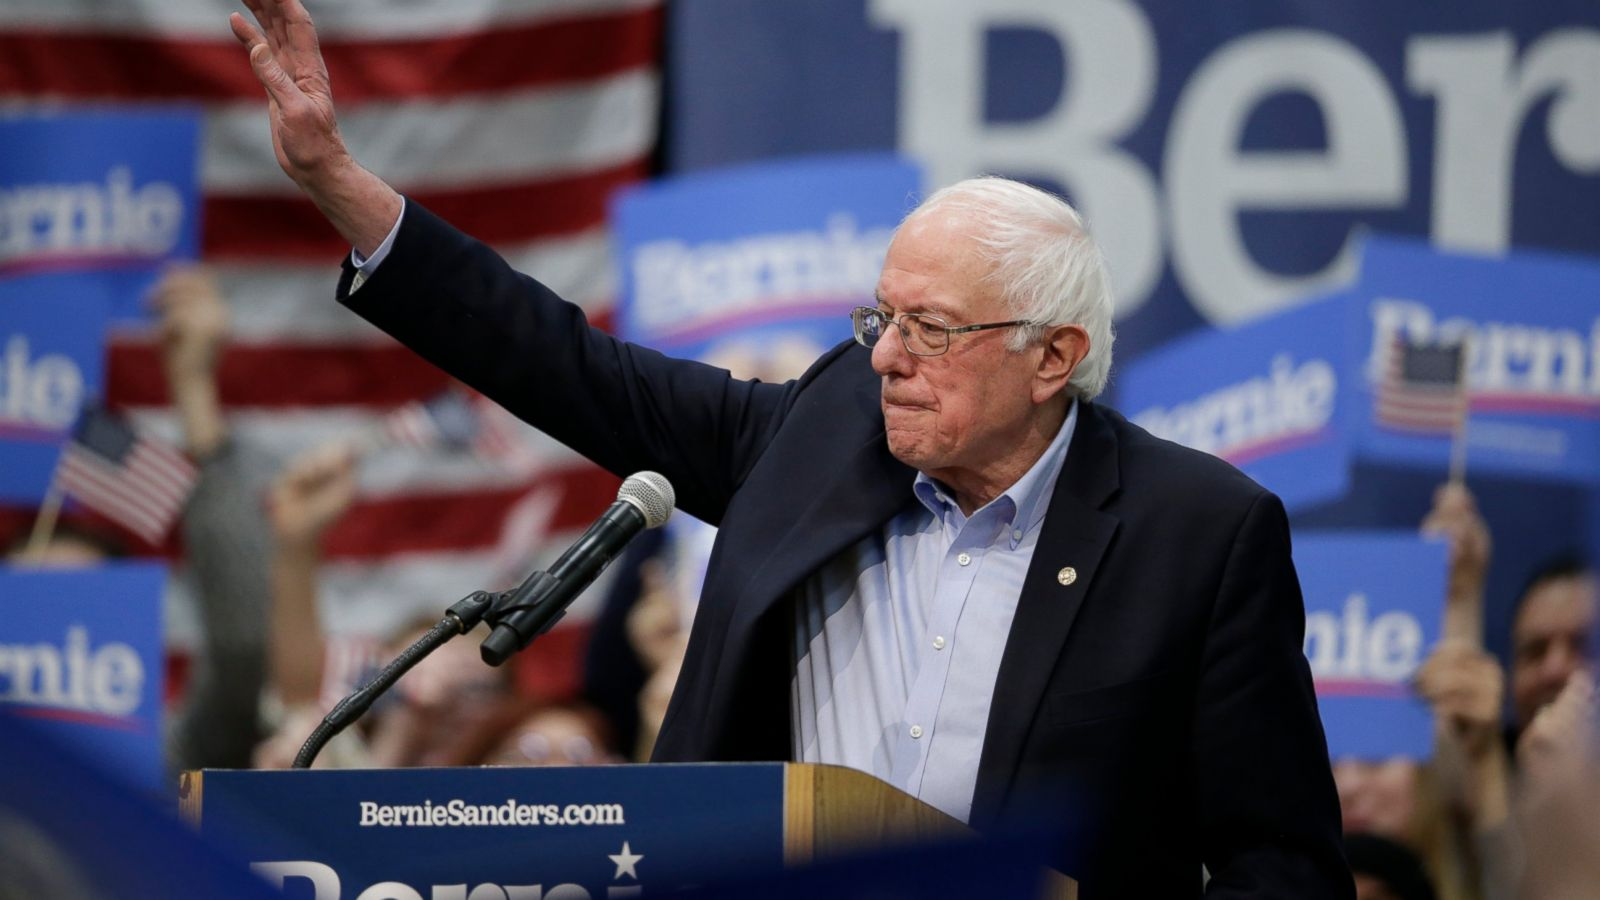 Bernie Sanders Drops Out, Suspends 2020 Presidential Campaign - Election Central